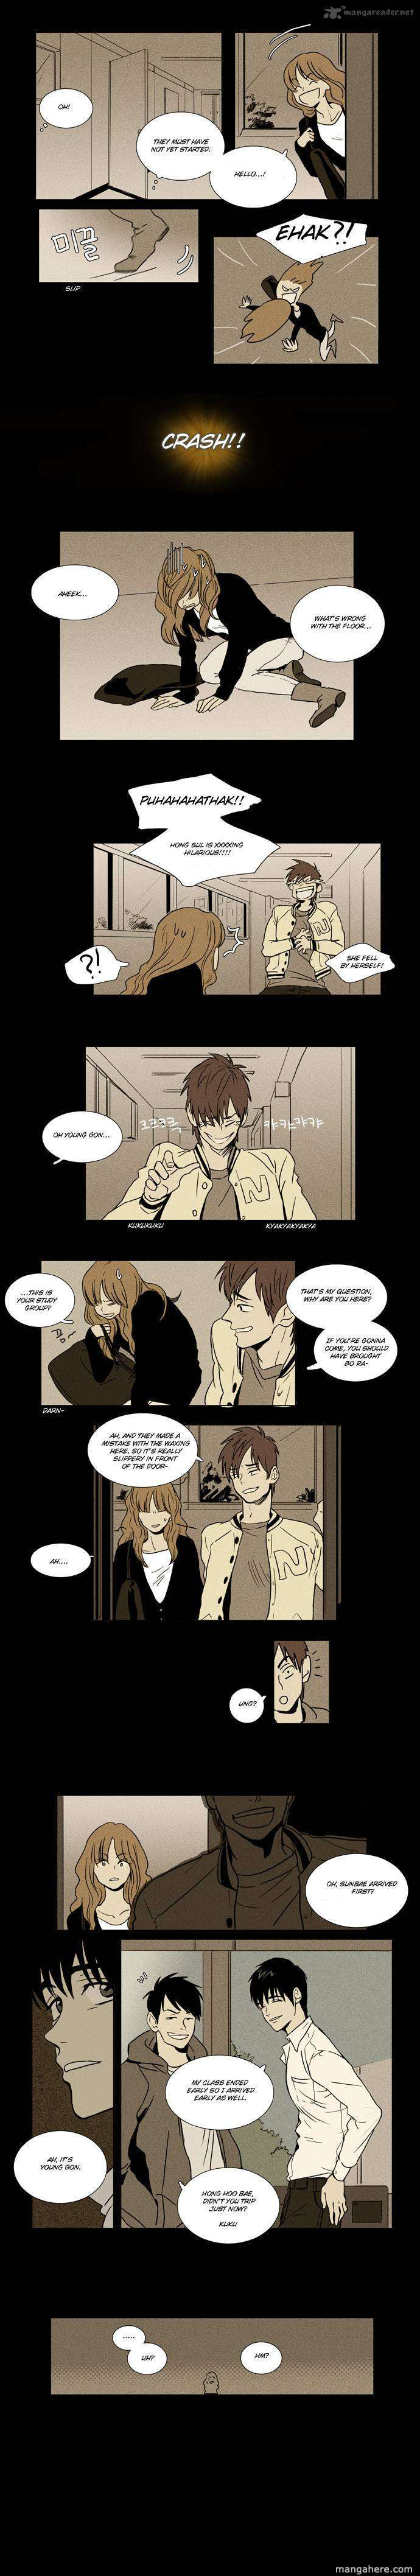 Cheese In The Trap 7 Page 2